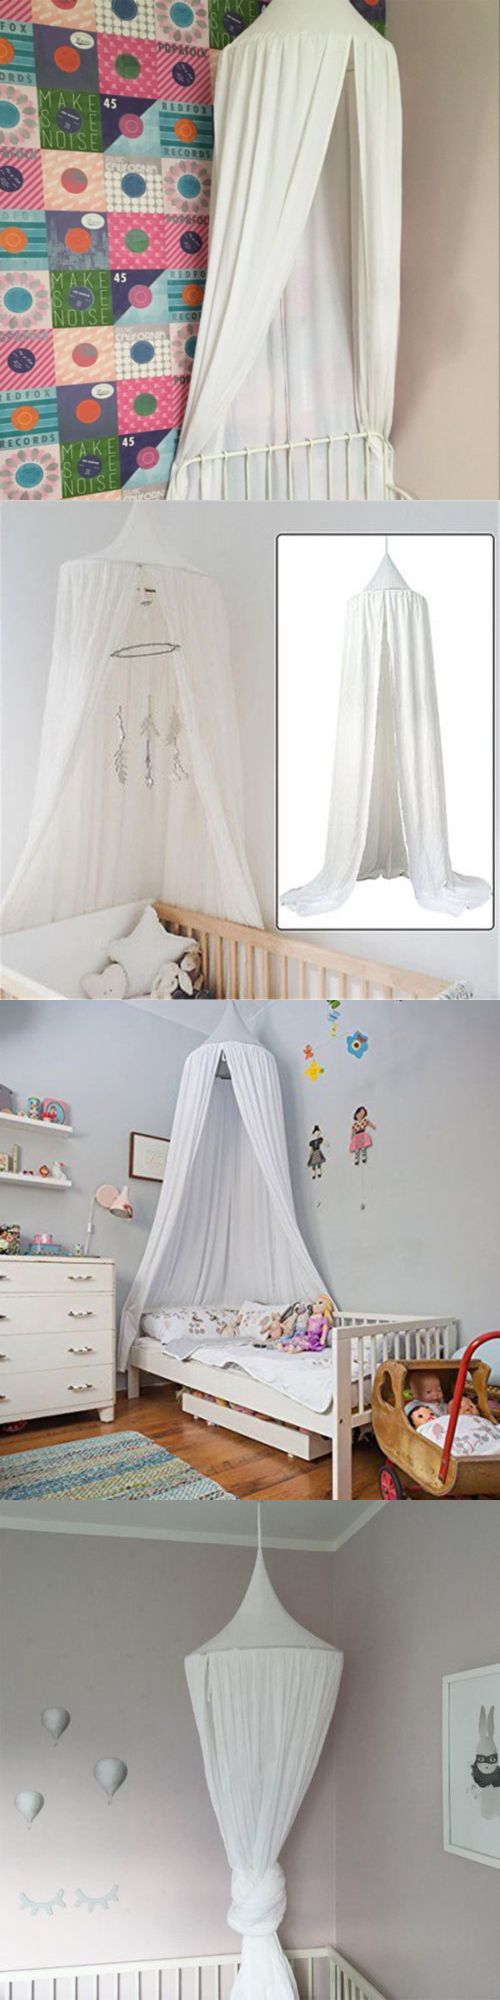 Canopies And Netting 176986 Summer Kid S Bed Canopy Mosquito Net Cotton Curtain Tent Bedding Dome It